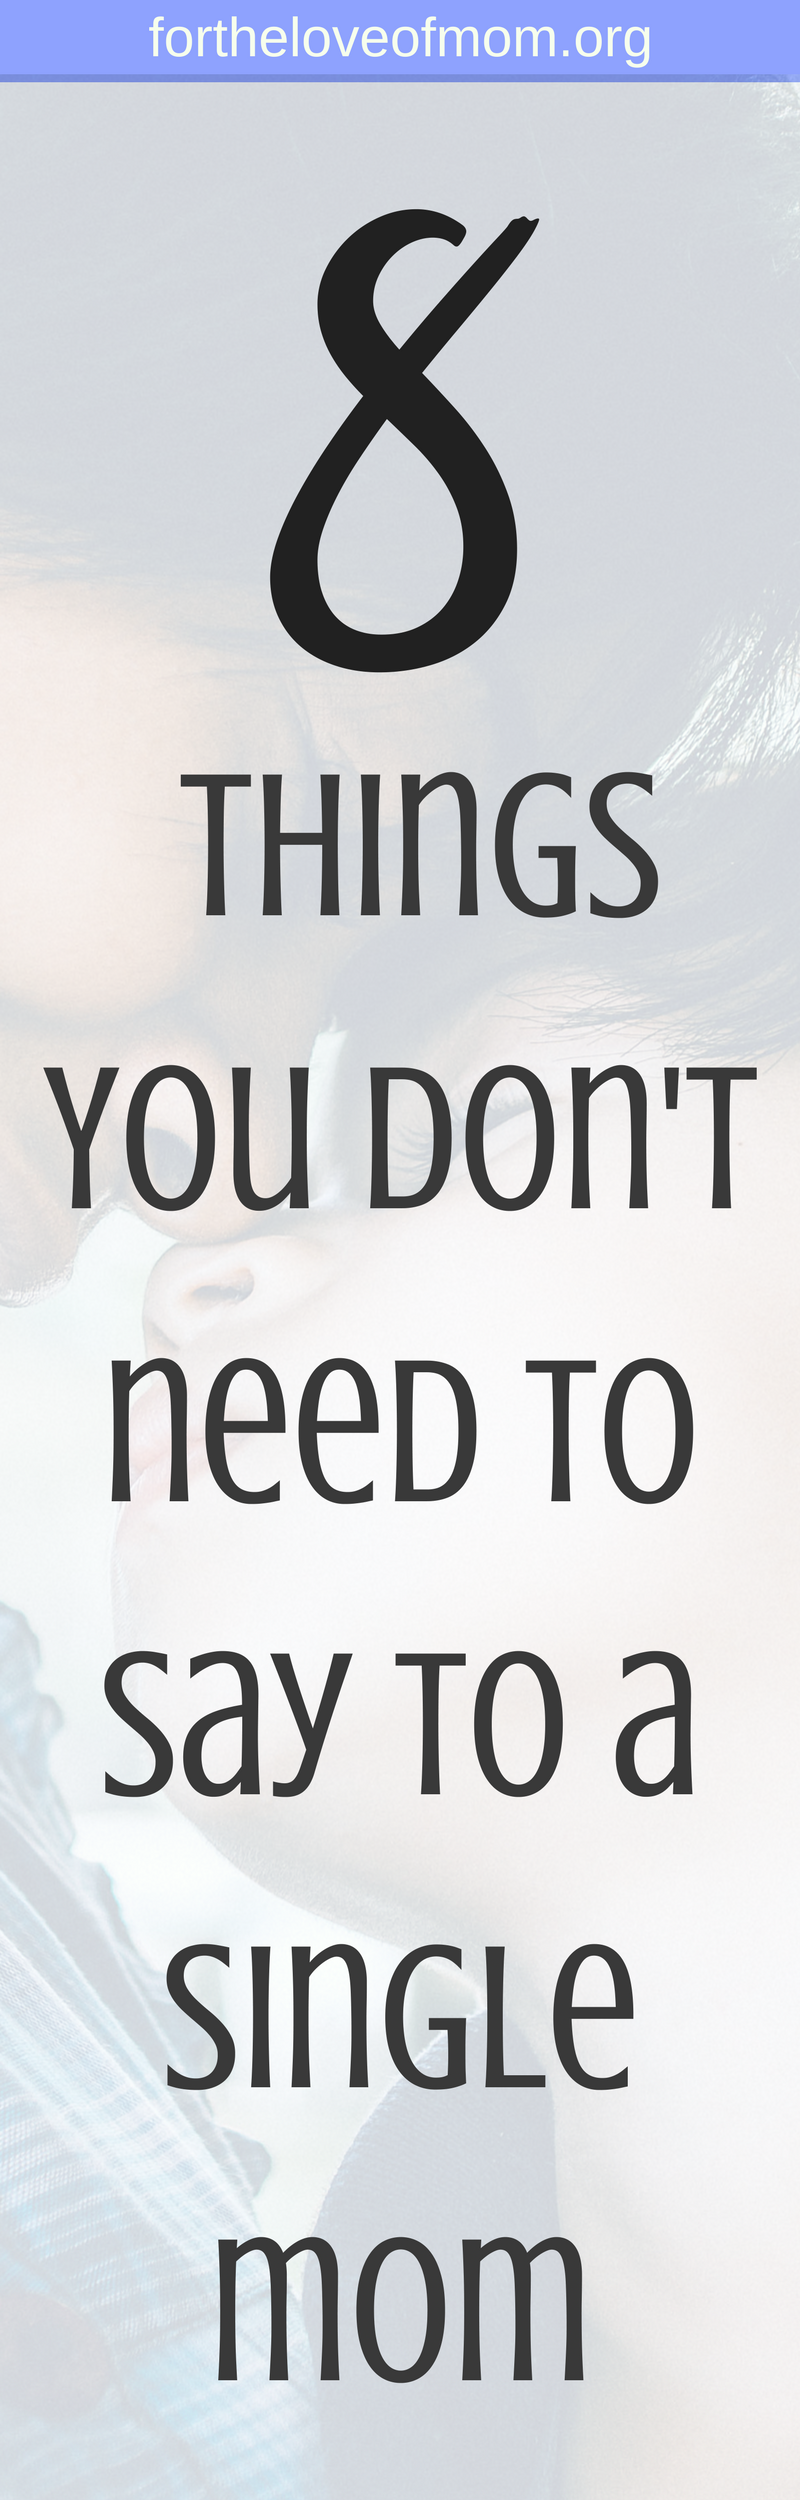 8 Things You Don't Need to Say to A Single Mom | Mom Friend Tips | How to be a friend | Friendship Tips for Moms | Advice for Moms | #momfriends | #momlife | #singlemom | www.fortheloveofmom.org